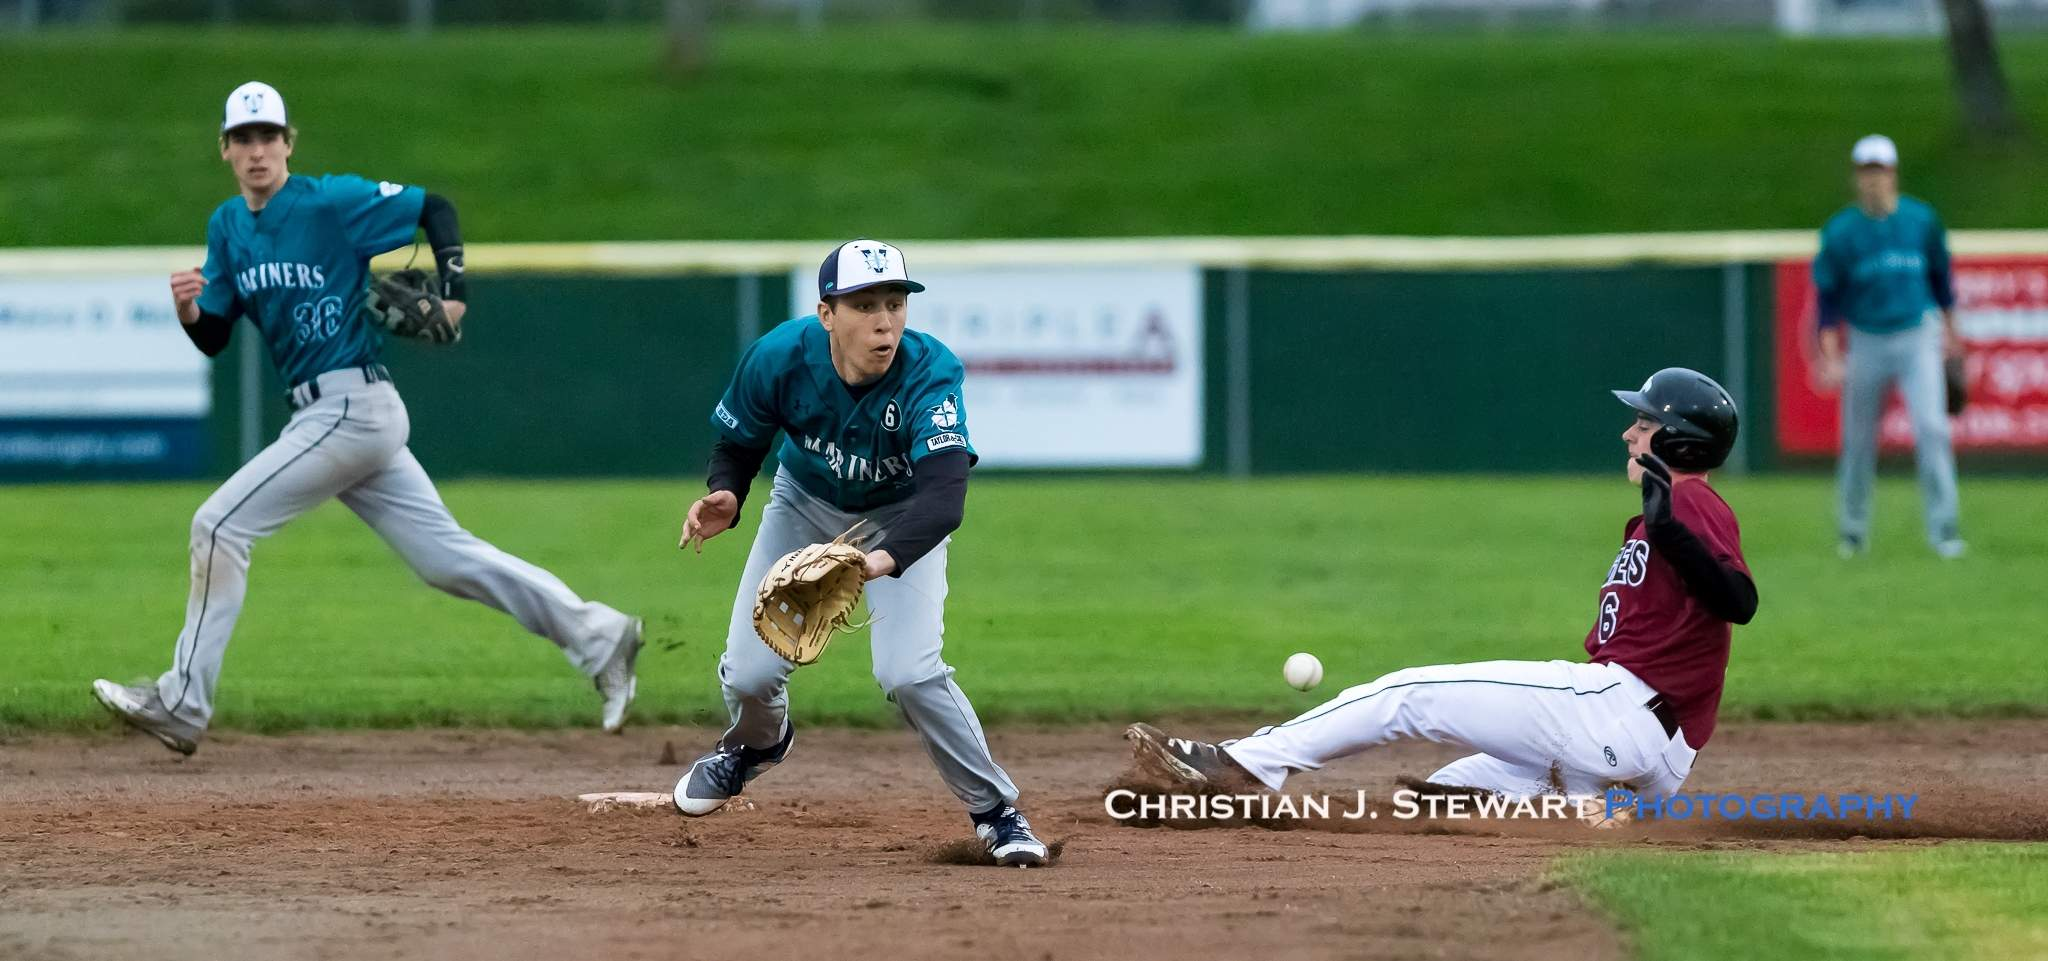 Victoria Mariners shortstop Josh Walker (5) stretches for an errant throw as the Eagles Eric Luchies (6) slides safely into second base Tuesday (Photo: Christian J. Stewart)